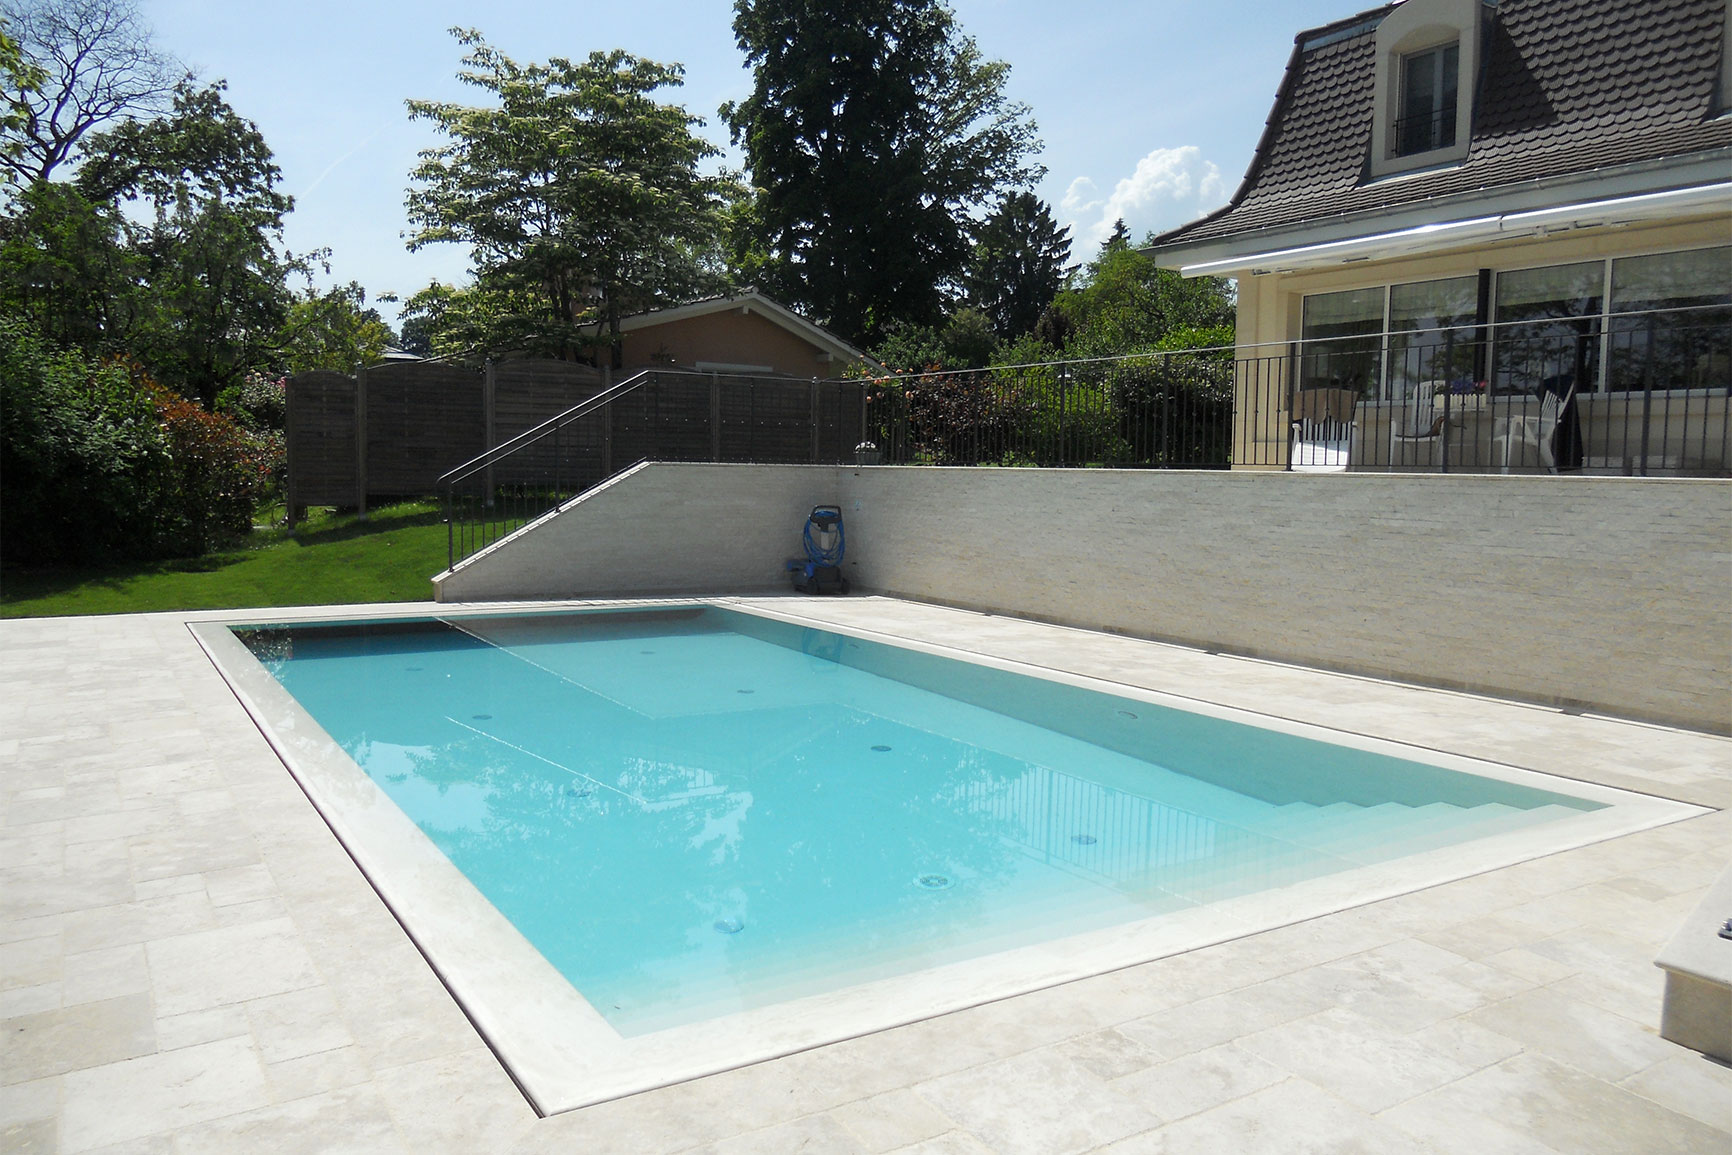 Piscine carrelage et d bordement couverture grando for Carrelage piscine